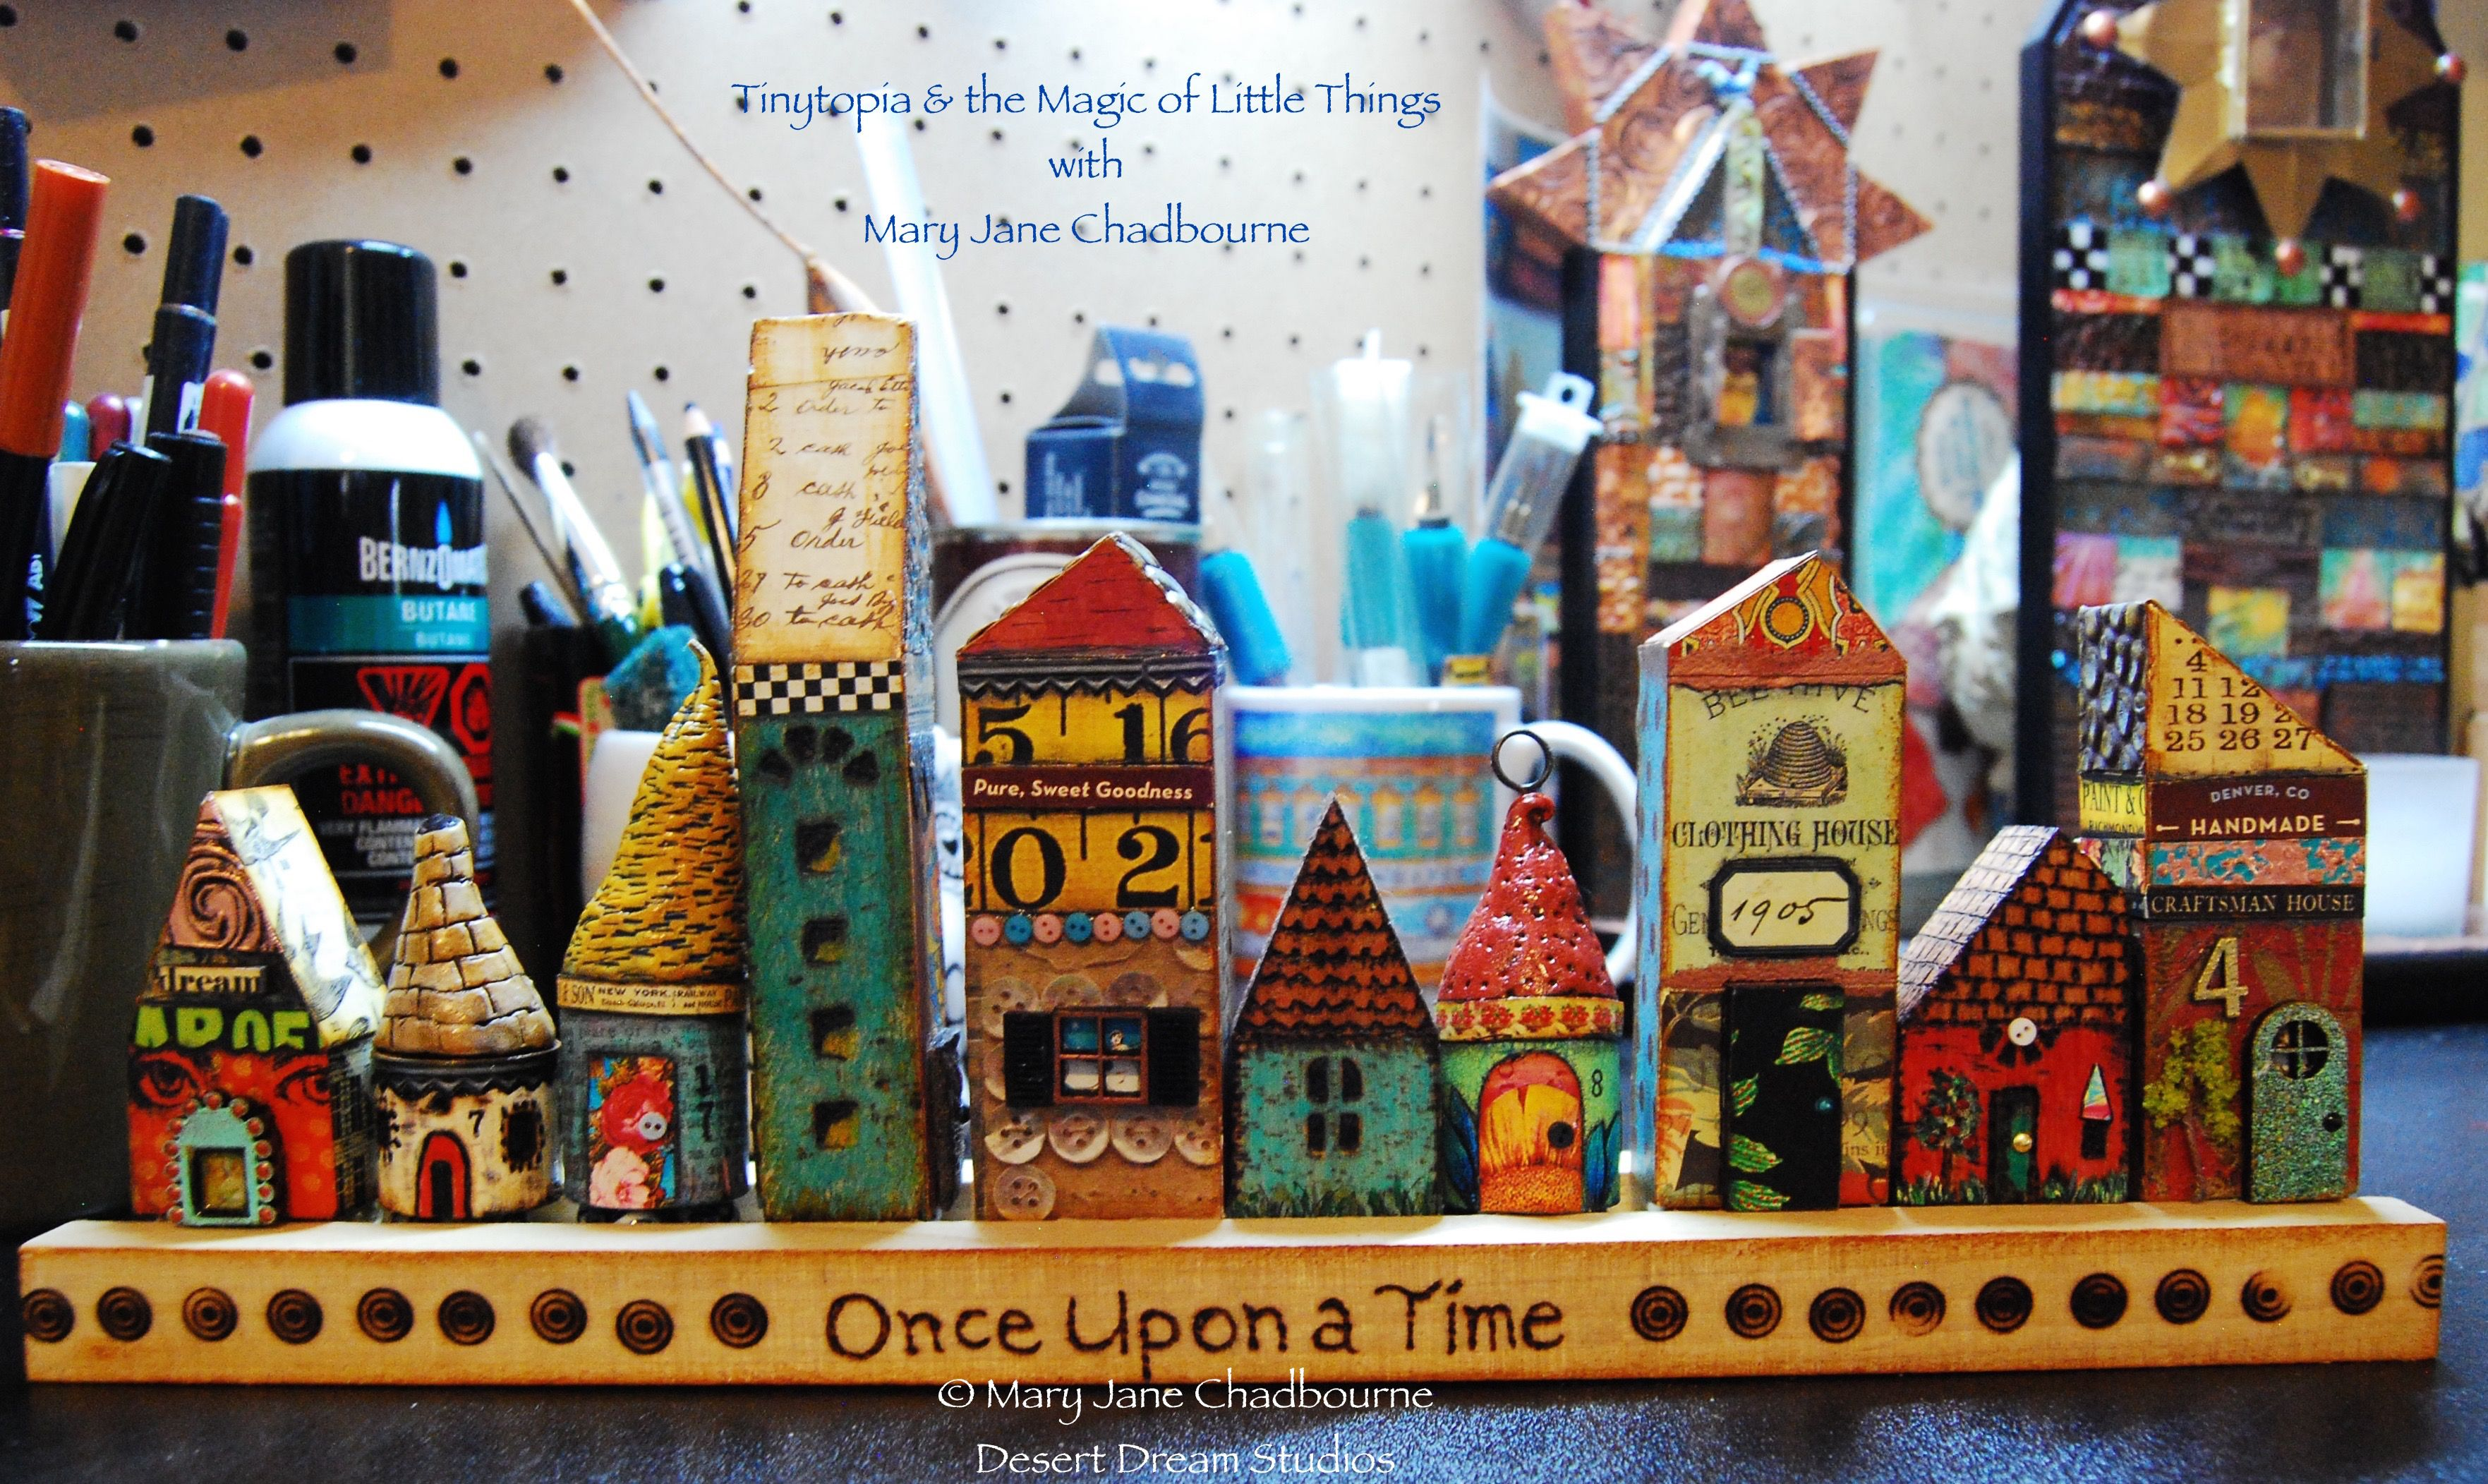 Tinytopia & the Magic of Little Things, my new online workshop this summer over at Artful Gathering....please join me, lots of FUN ahead! atozinnia.org